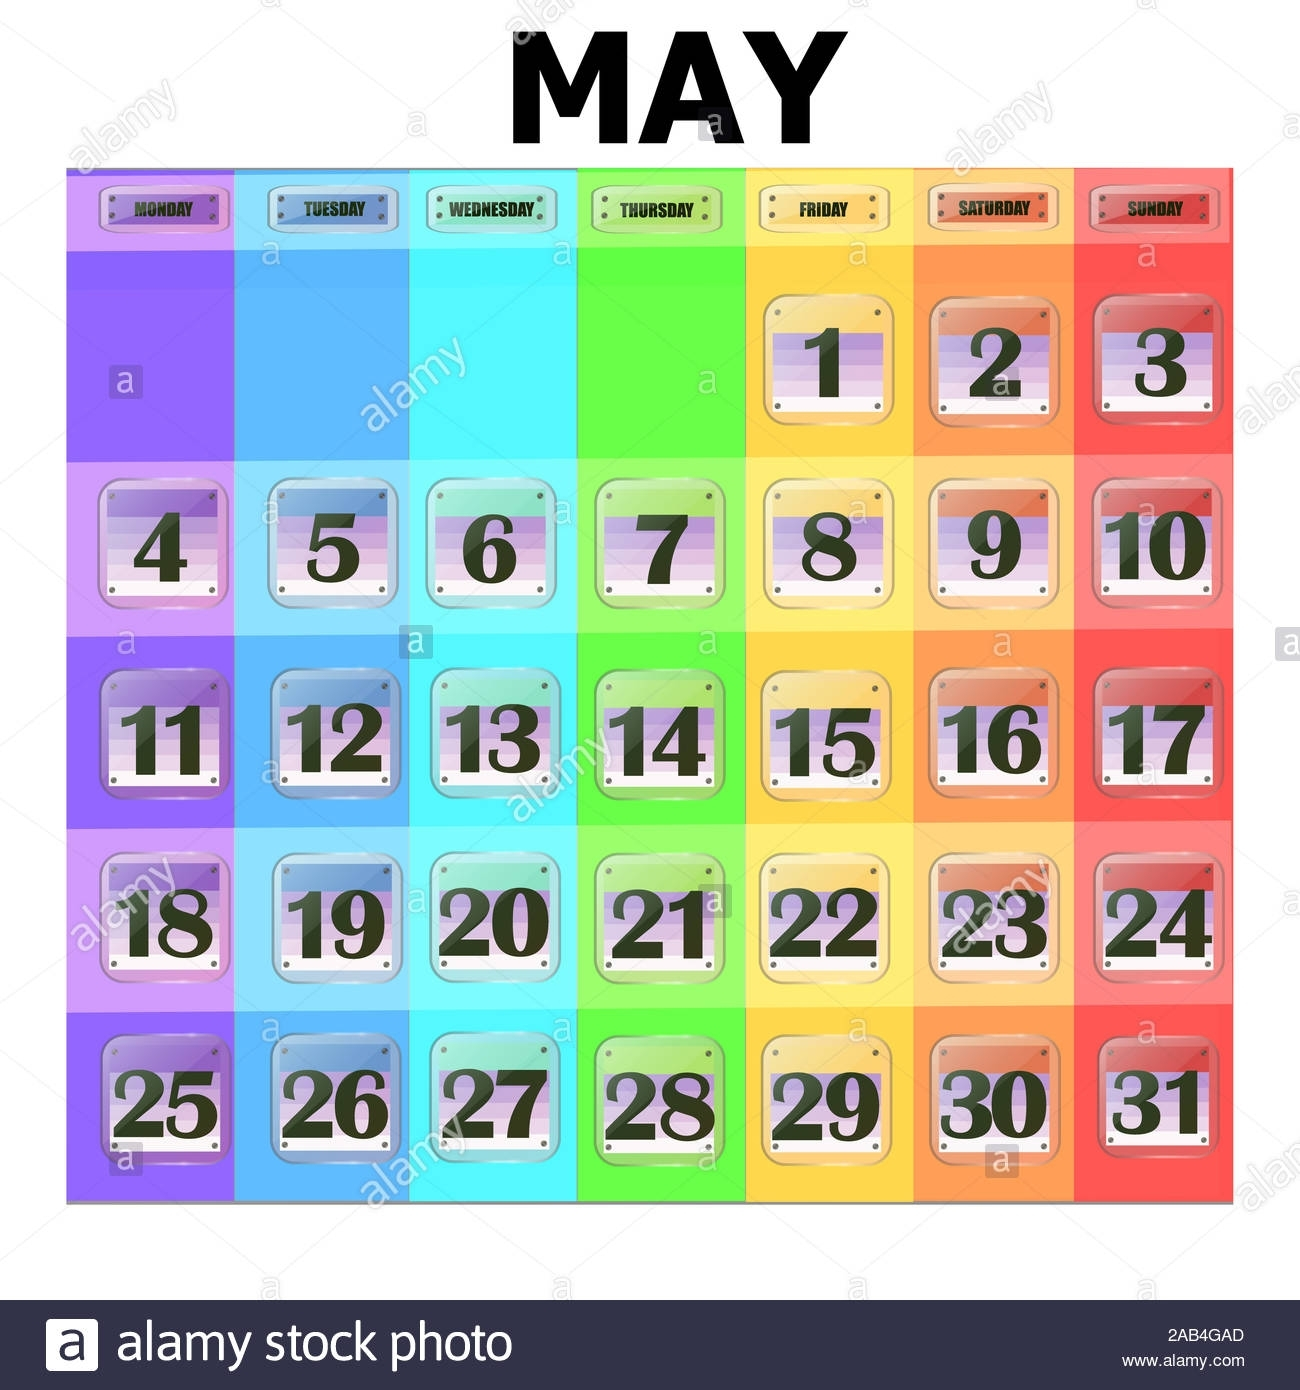 Colorful Calendar For May 2020 In English. Set Of Buttons inside Year Of Special Days 2020